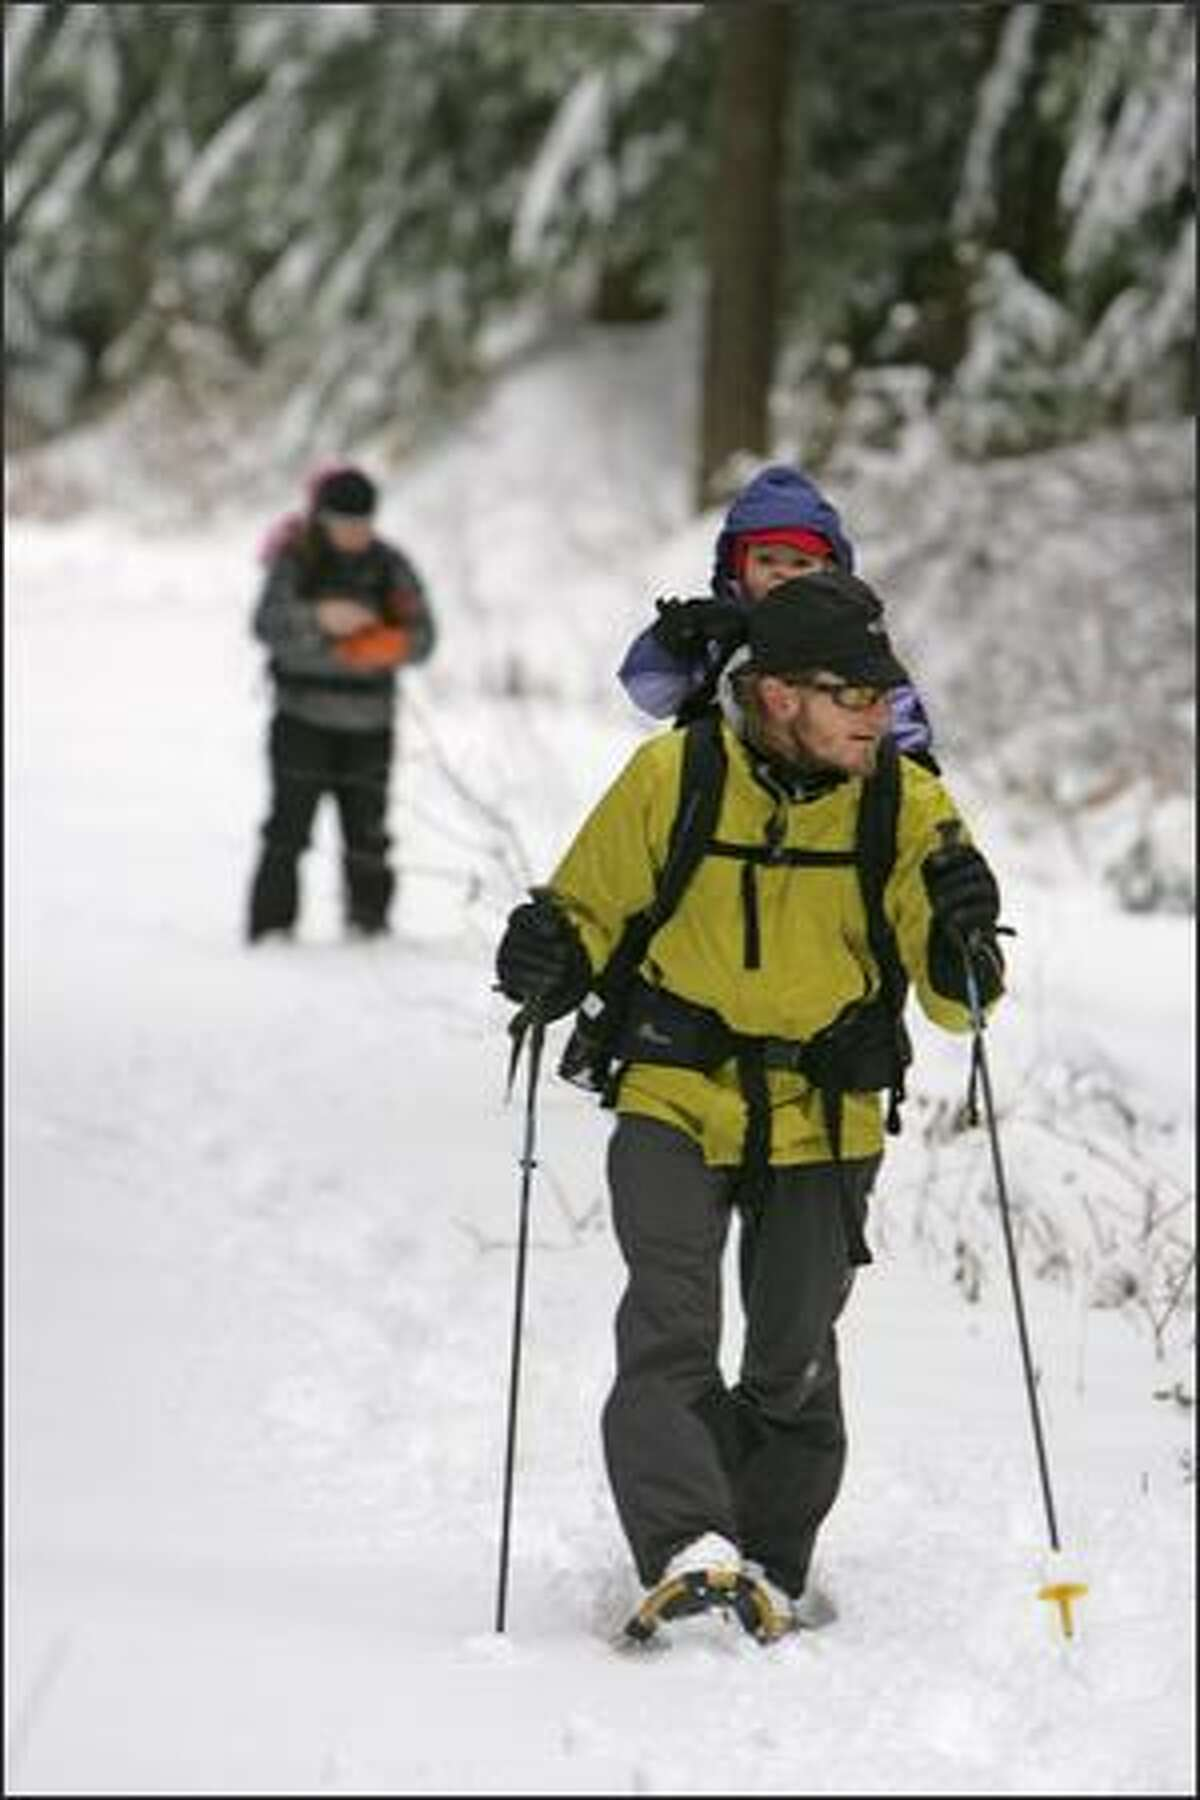 """Matthew Grummer, of Seattle, carries his daughter Araiya, 2, while snowshoeing near Snoqualmie Pass. Grummer, who was with his wife and other daughter, said that they """"came to give their kids a sense of adventure."""""""